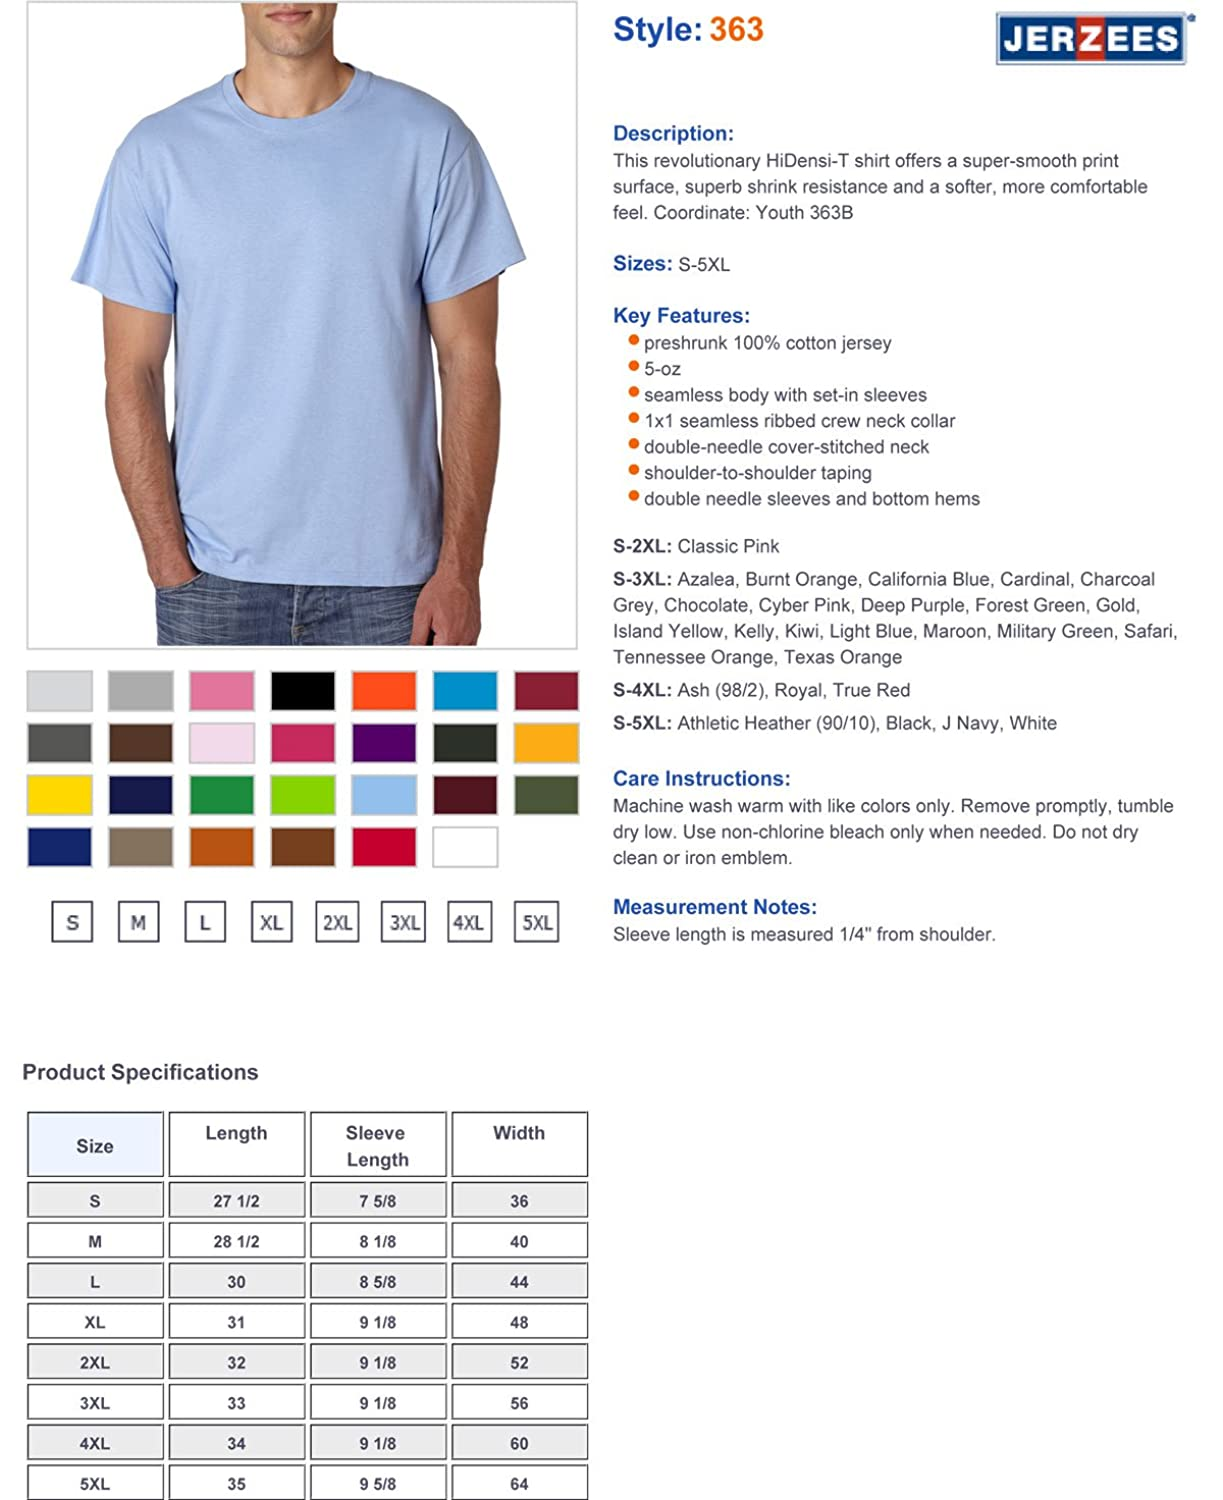 Jerzees 5 oz hidensi t t shirt 363 amazon nvjuhfo Image collections